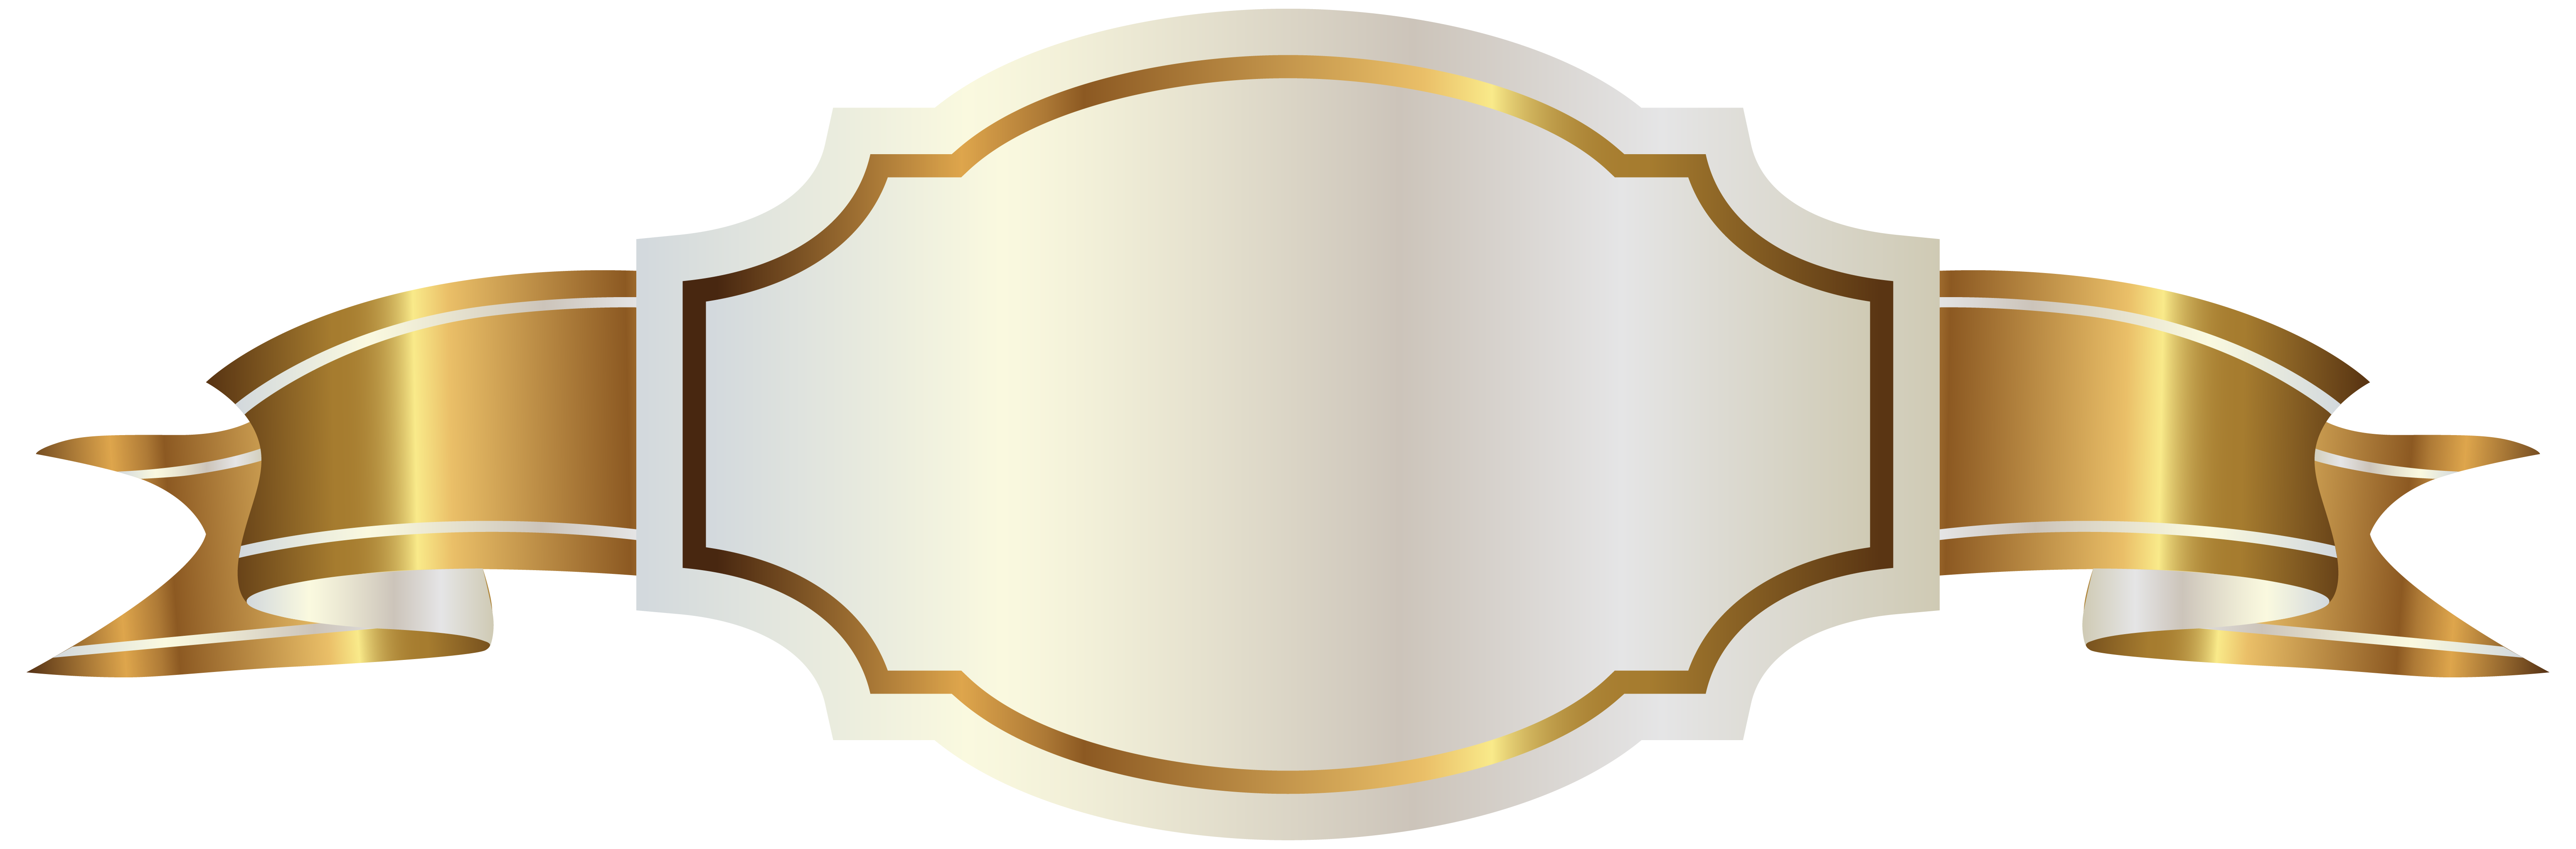 Golden Banner With White Label transparent PNG.